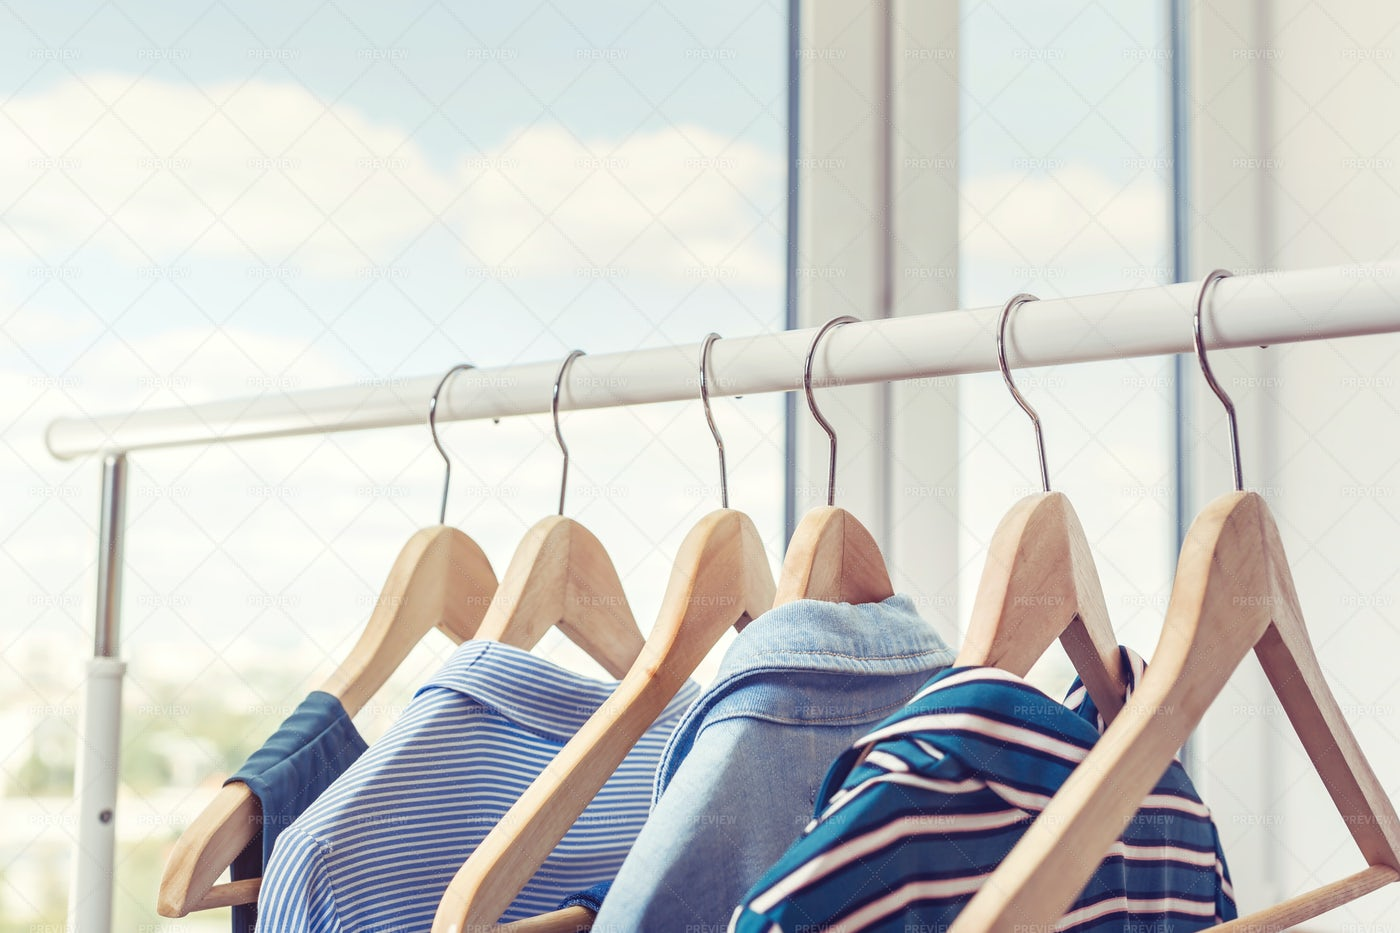 Clothes Hanging On Rack: Stock Photos